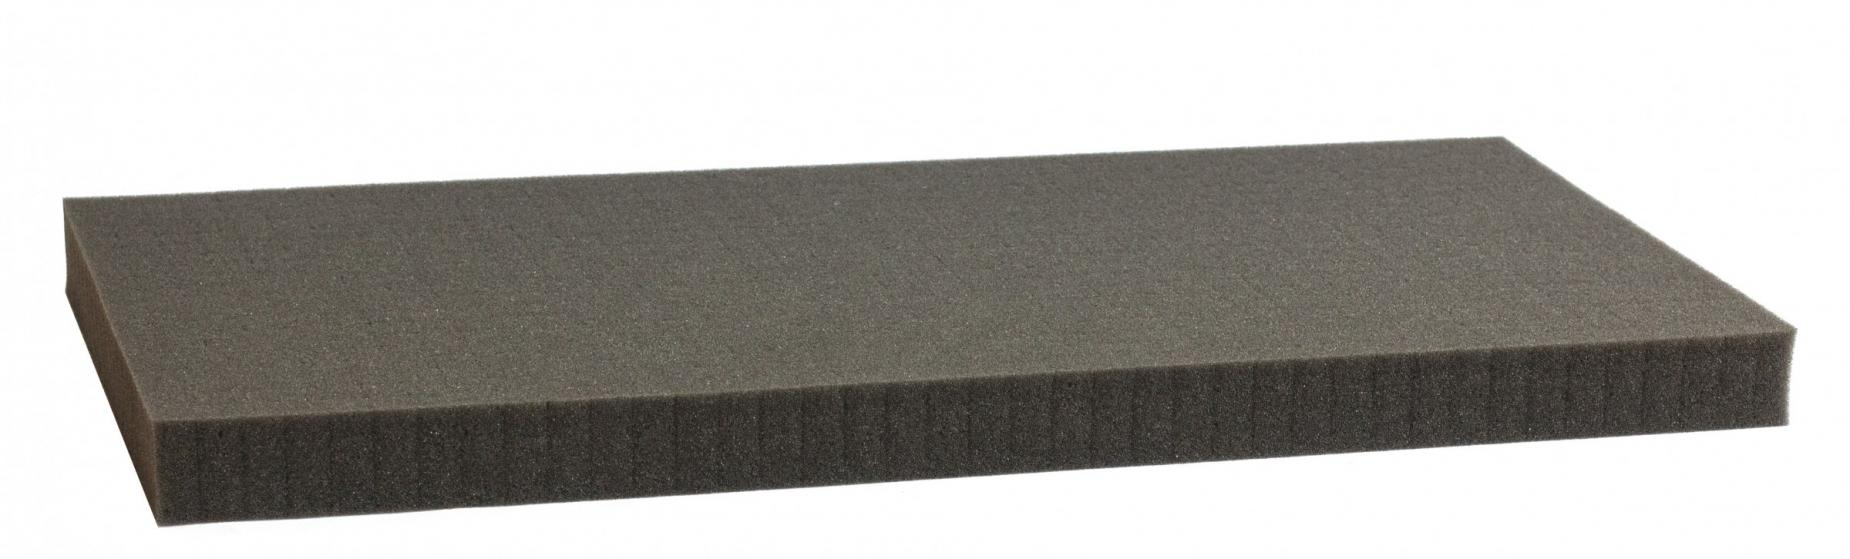 500 mm x 250 mm x 30 mm - Raster 12,5 mm - Pick and Pluck / Pre-Cubed foam tray